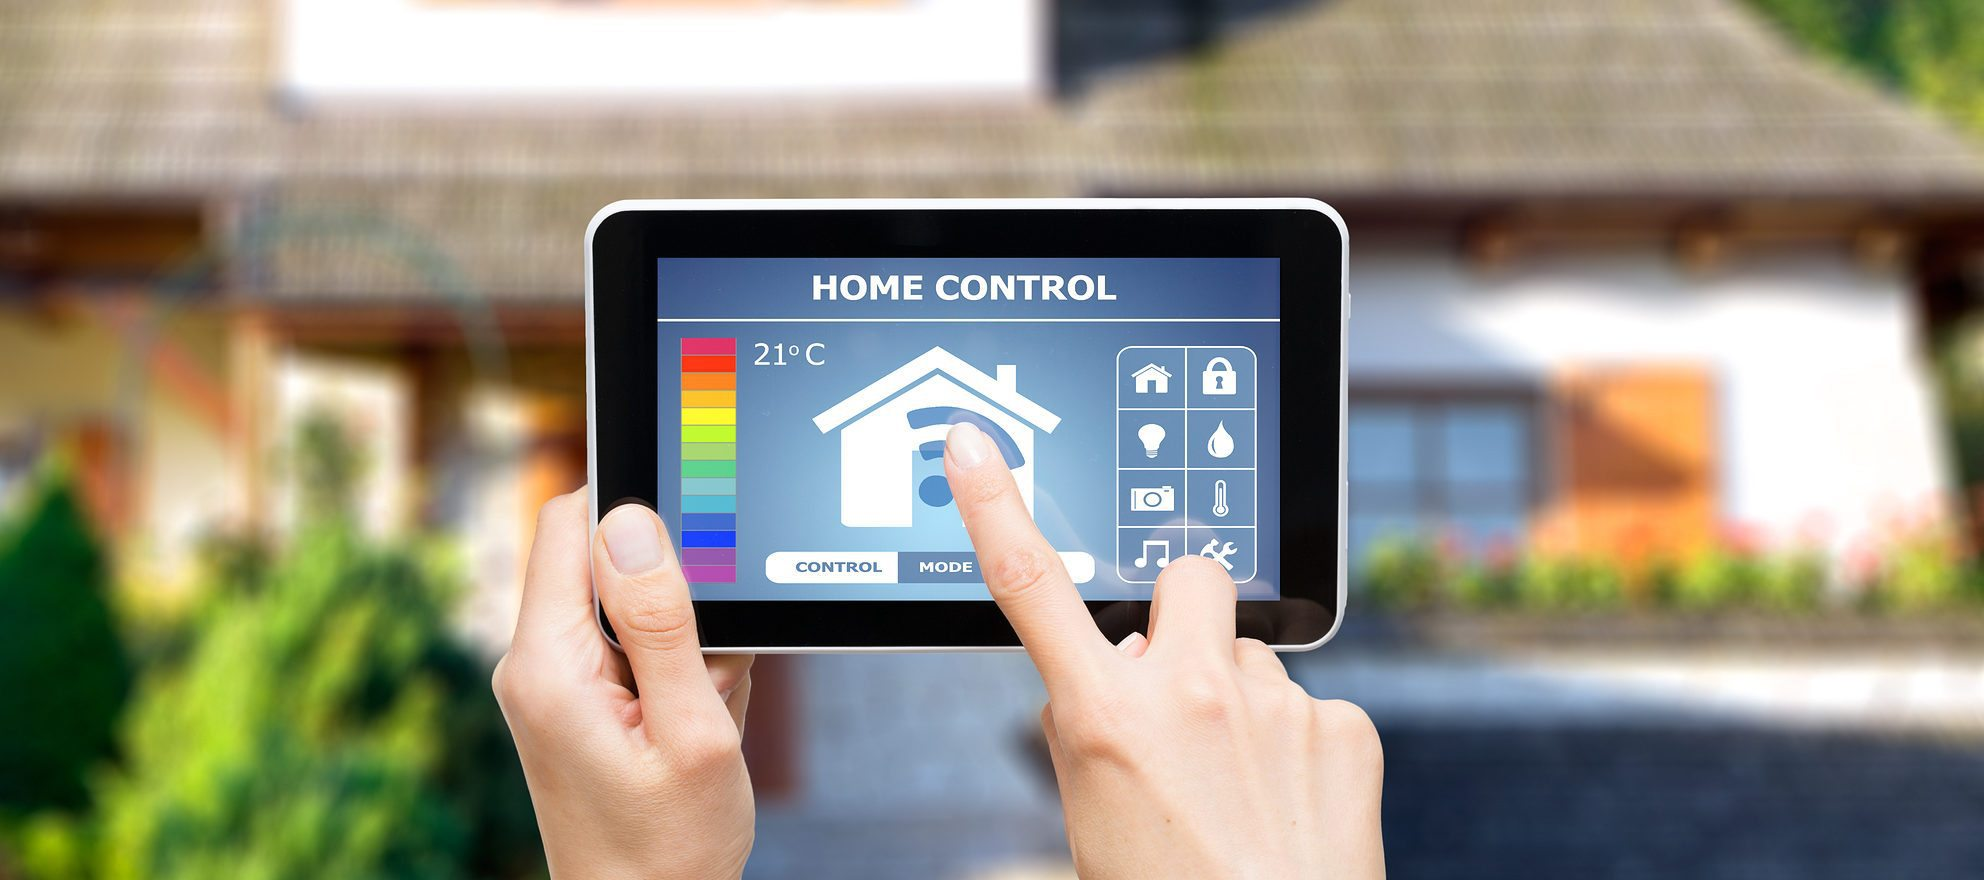 5 Smart Home Trends Homebuyers Want In 2017